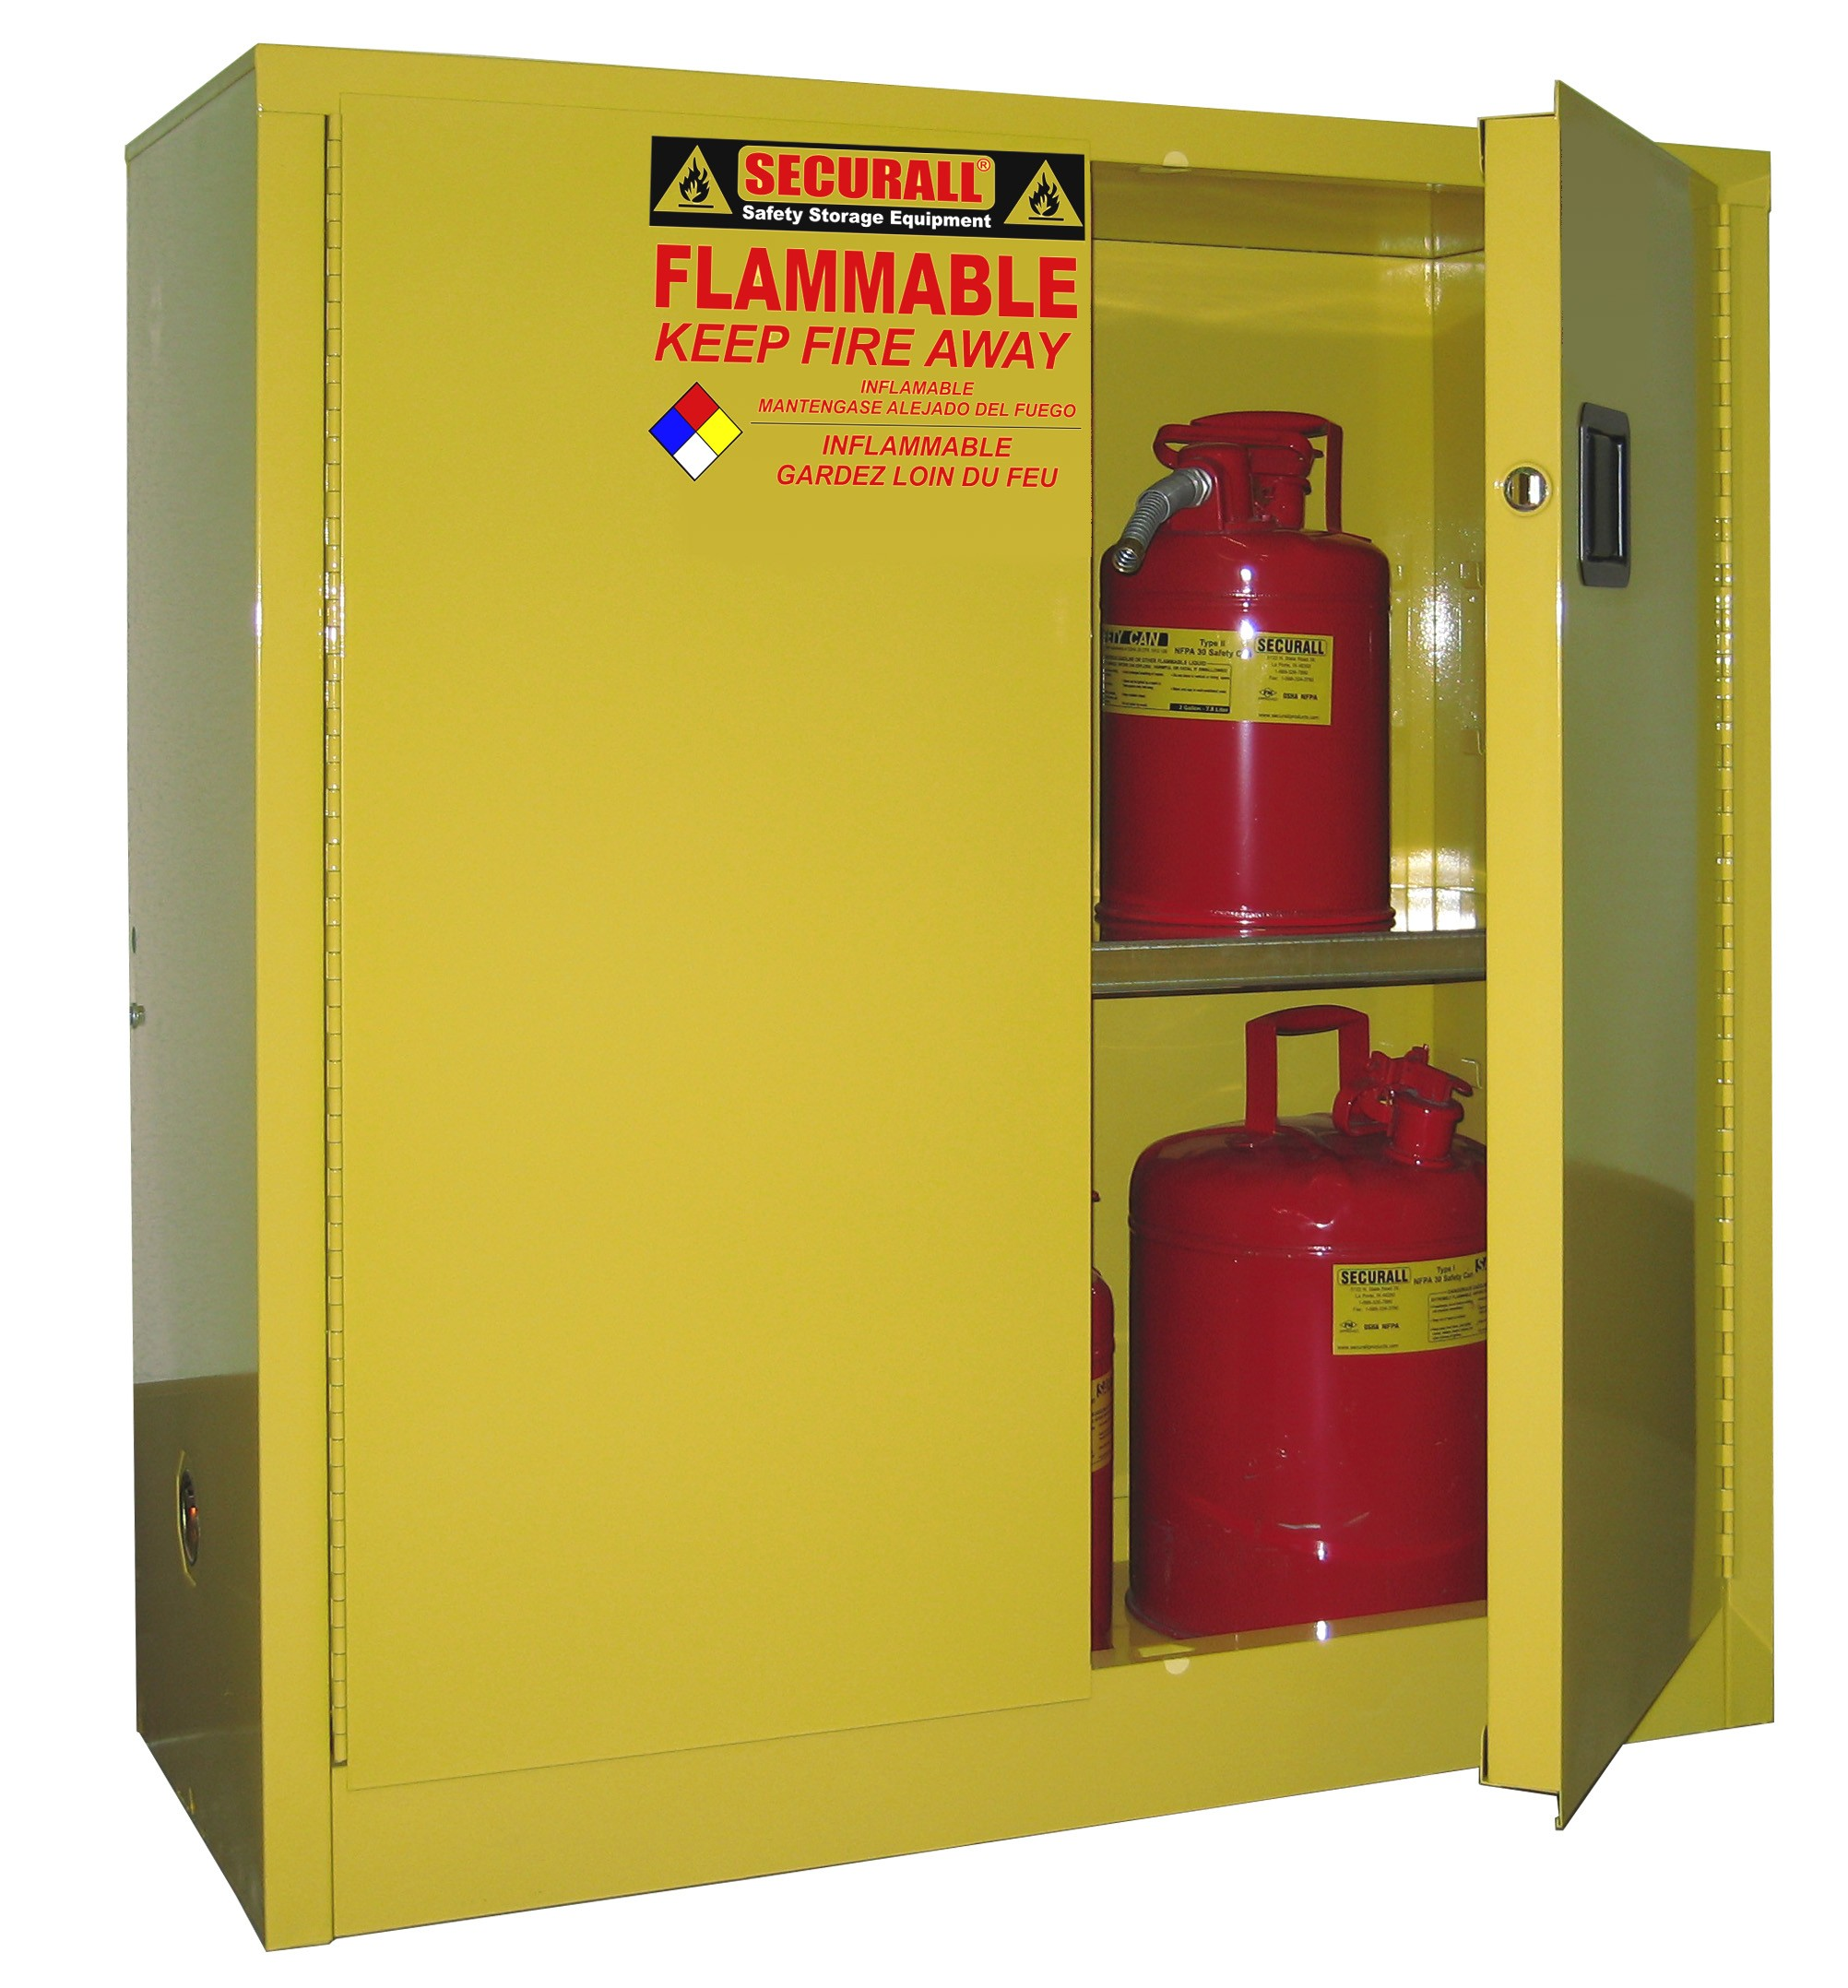 Cabinets for Storing Flammables